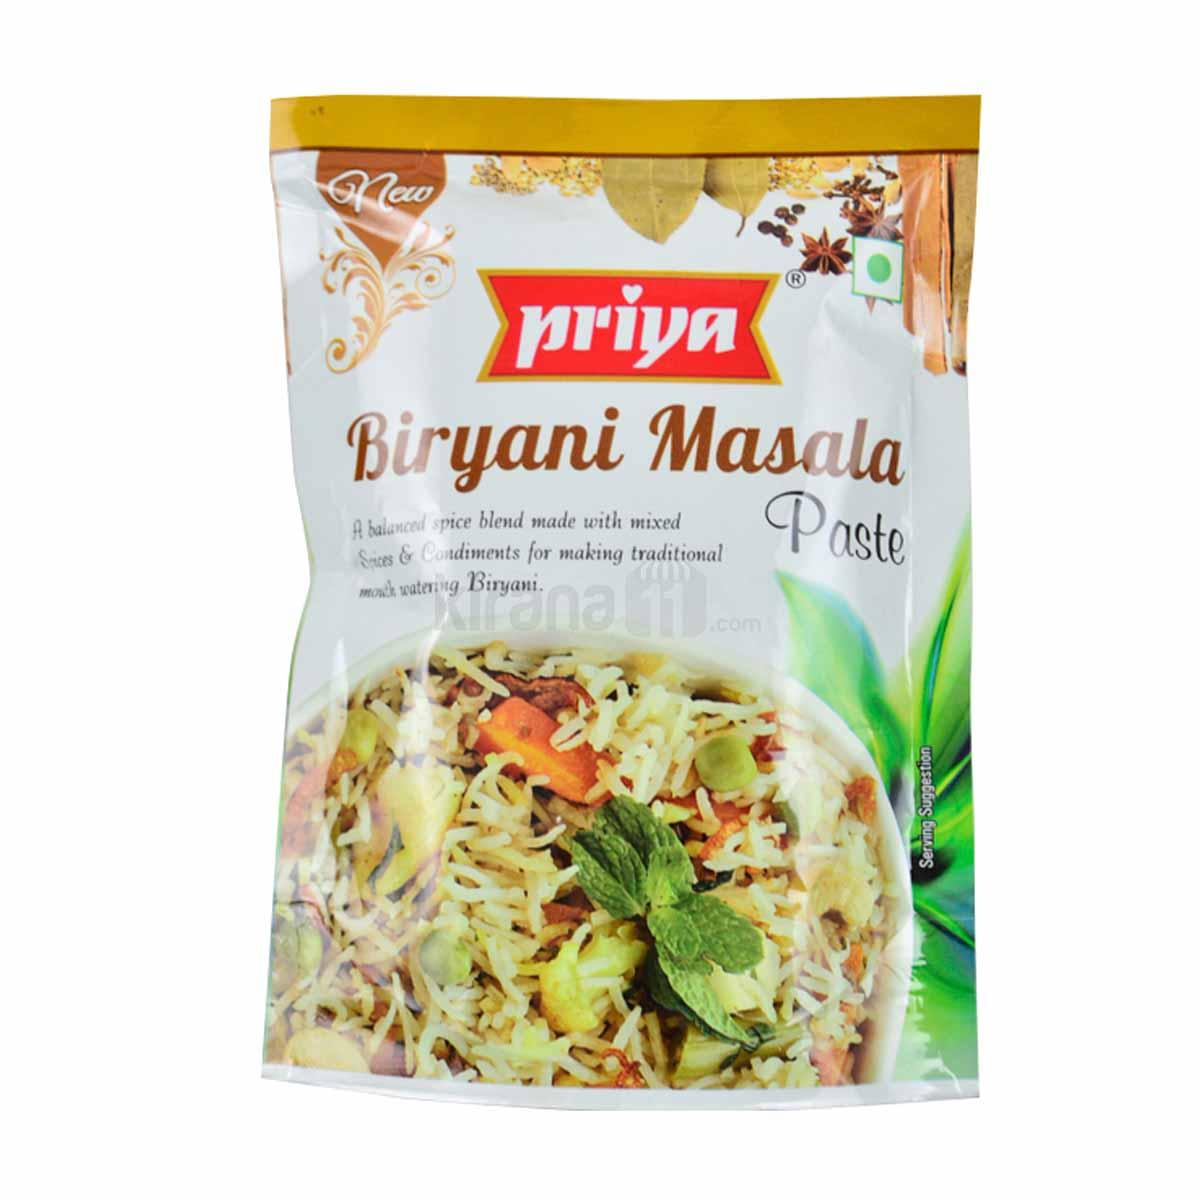 Priya garam masala - Best garam masala brands in india - Spice mixes brands